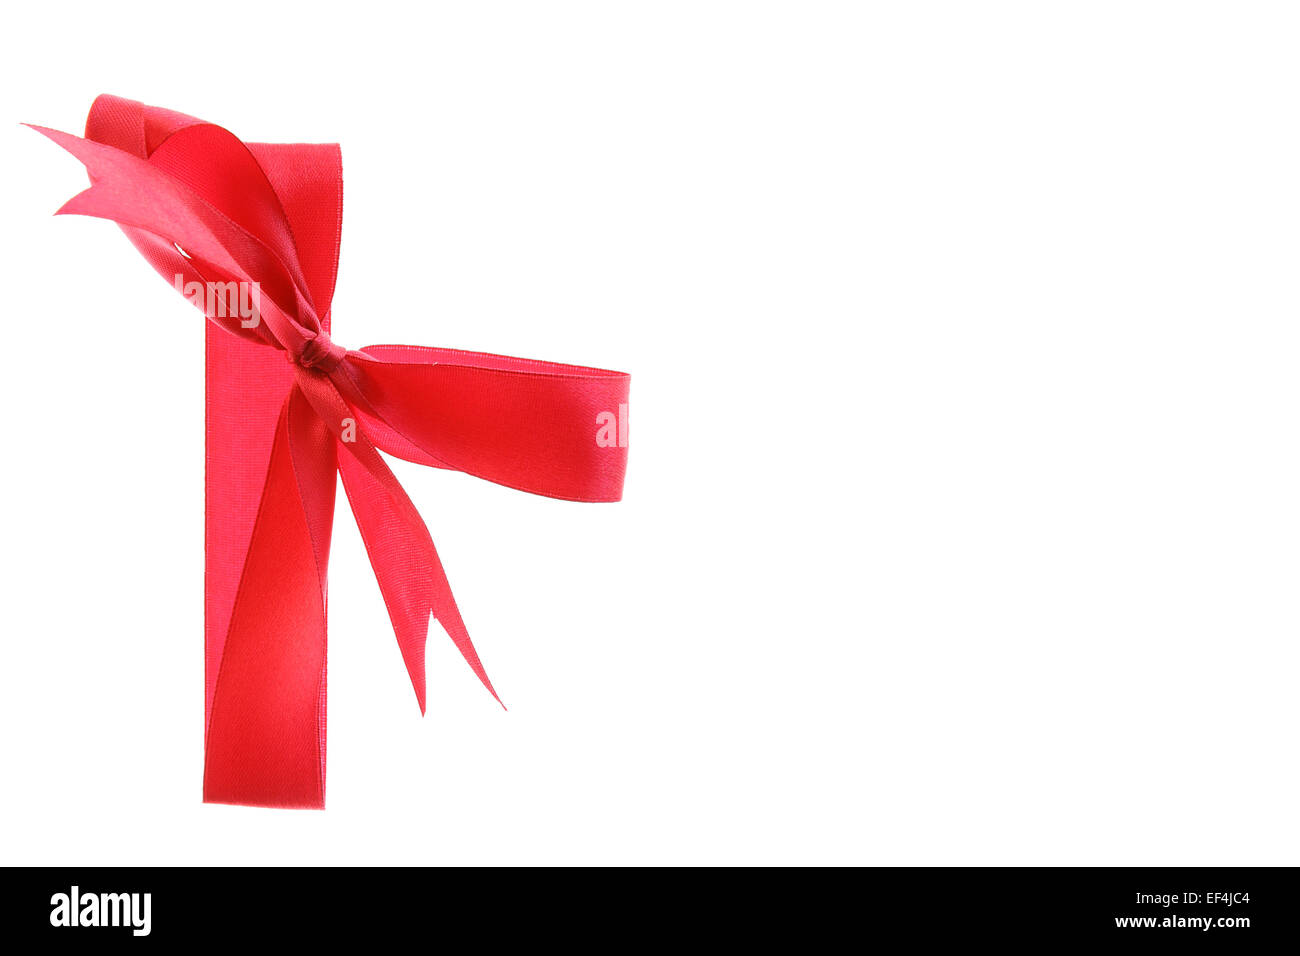 present ribbon red bow gift isolated congratulations birthday celebration happy christmas card holiday Stock Photo